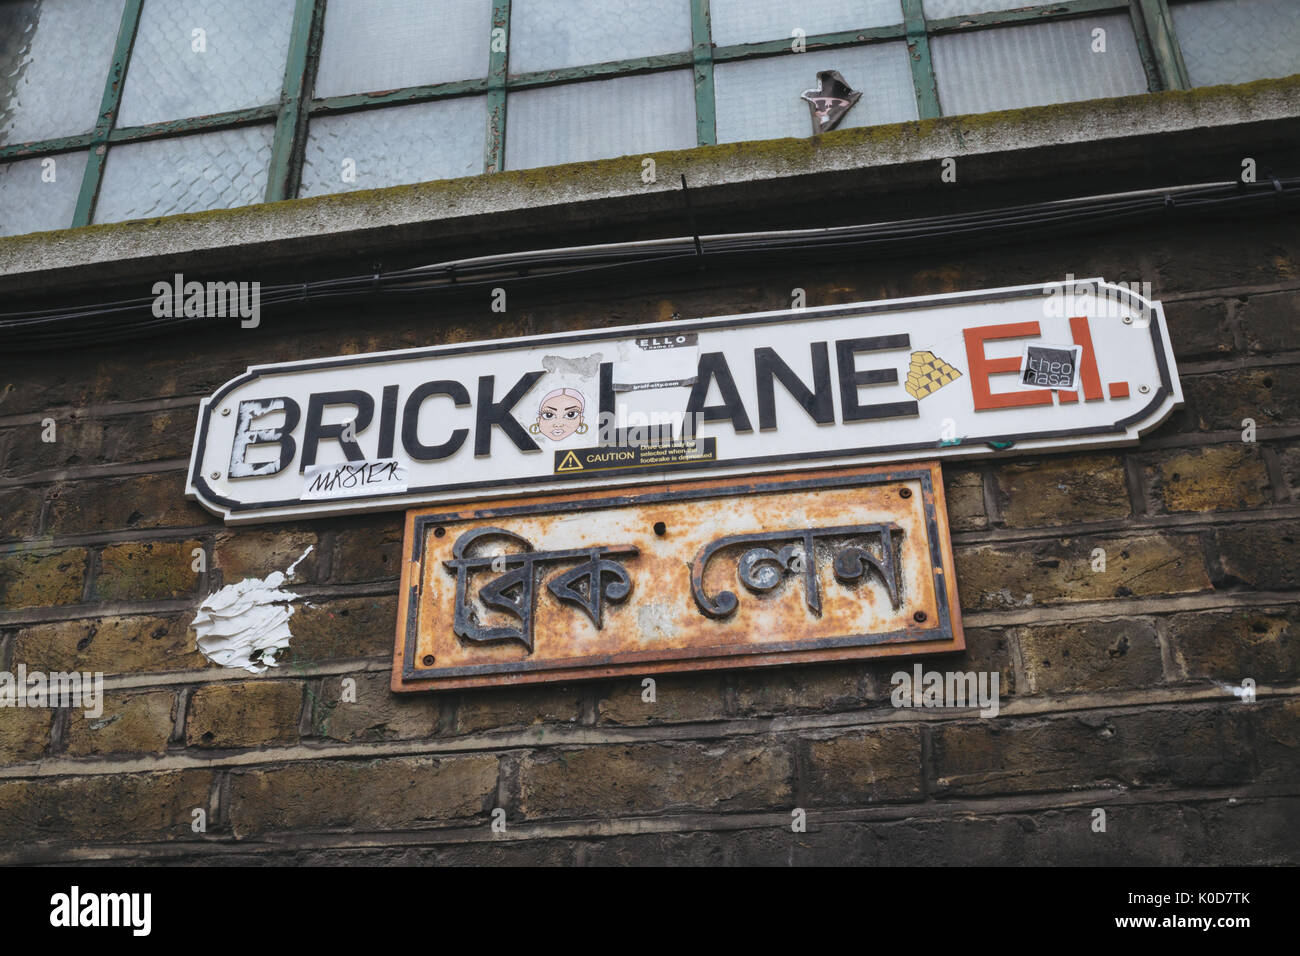 Brick Lane street sign in English and Bengali. The street is the heart of the London's Bangladeshi-Sylheti community and is famous for its many curry - Stock Image